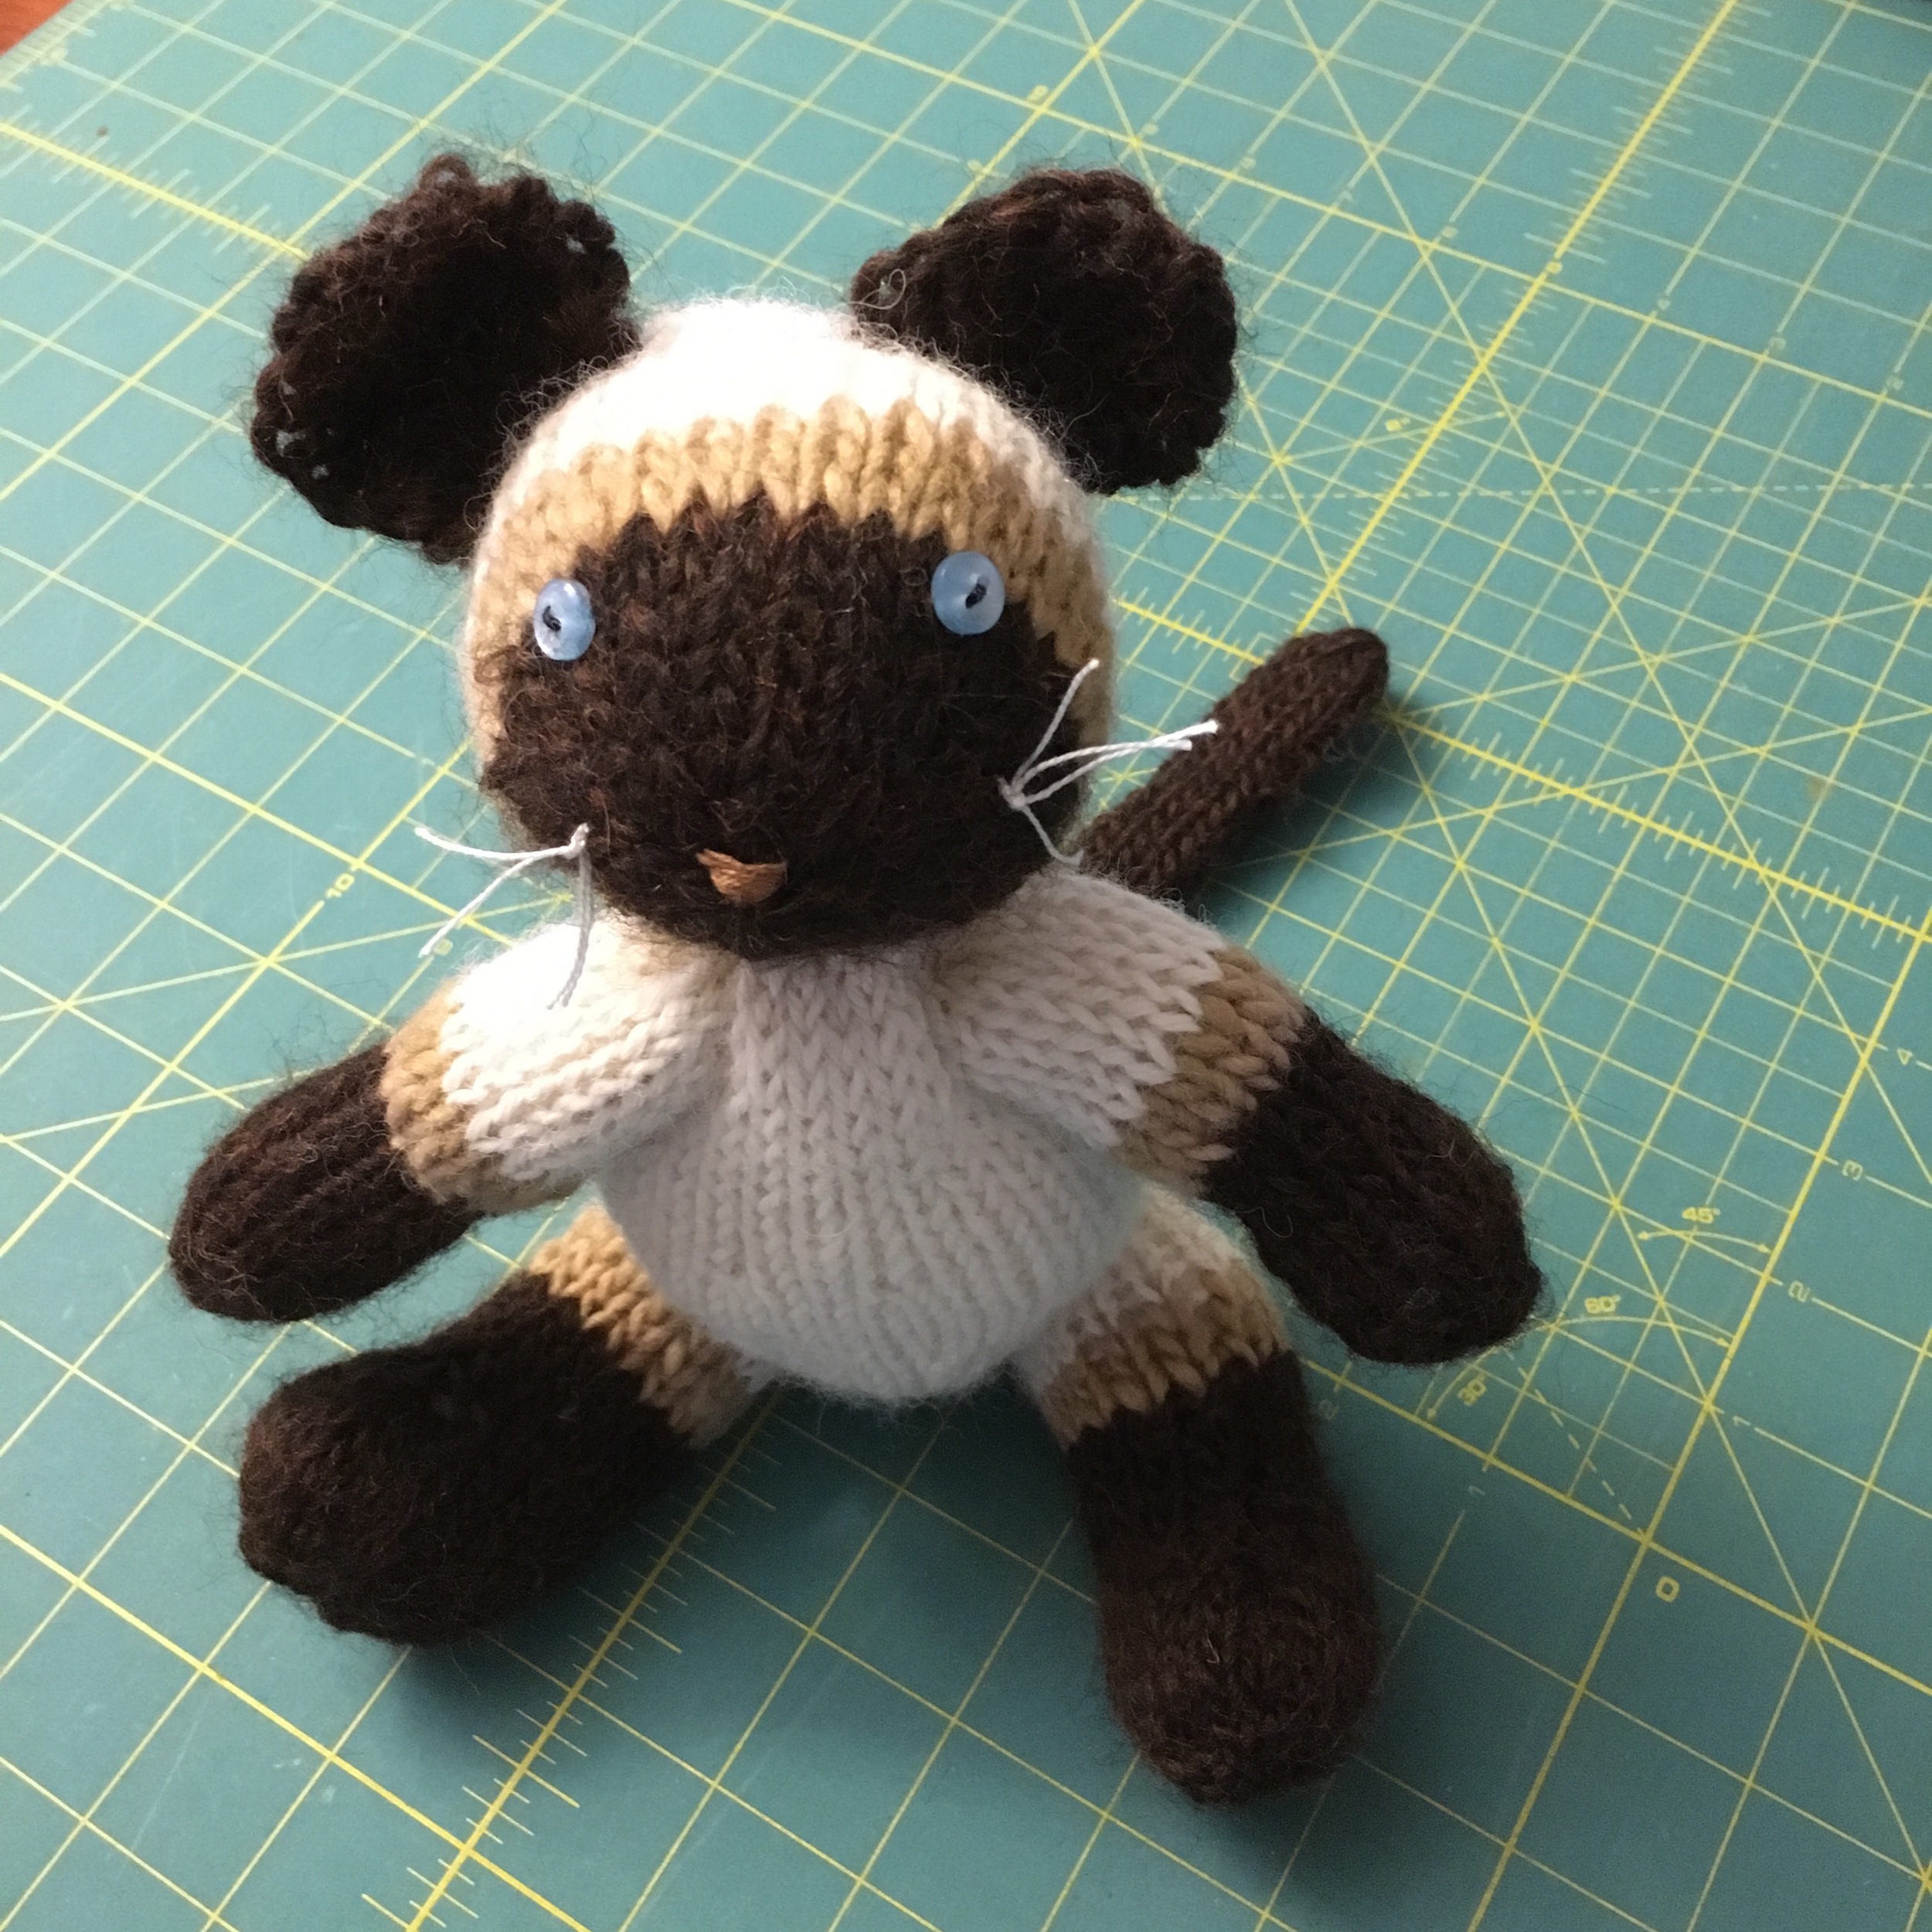 Fuzzy Mitten's Pattern for a Knit Siamese Cat